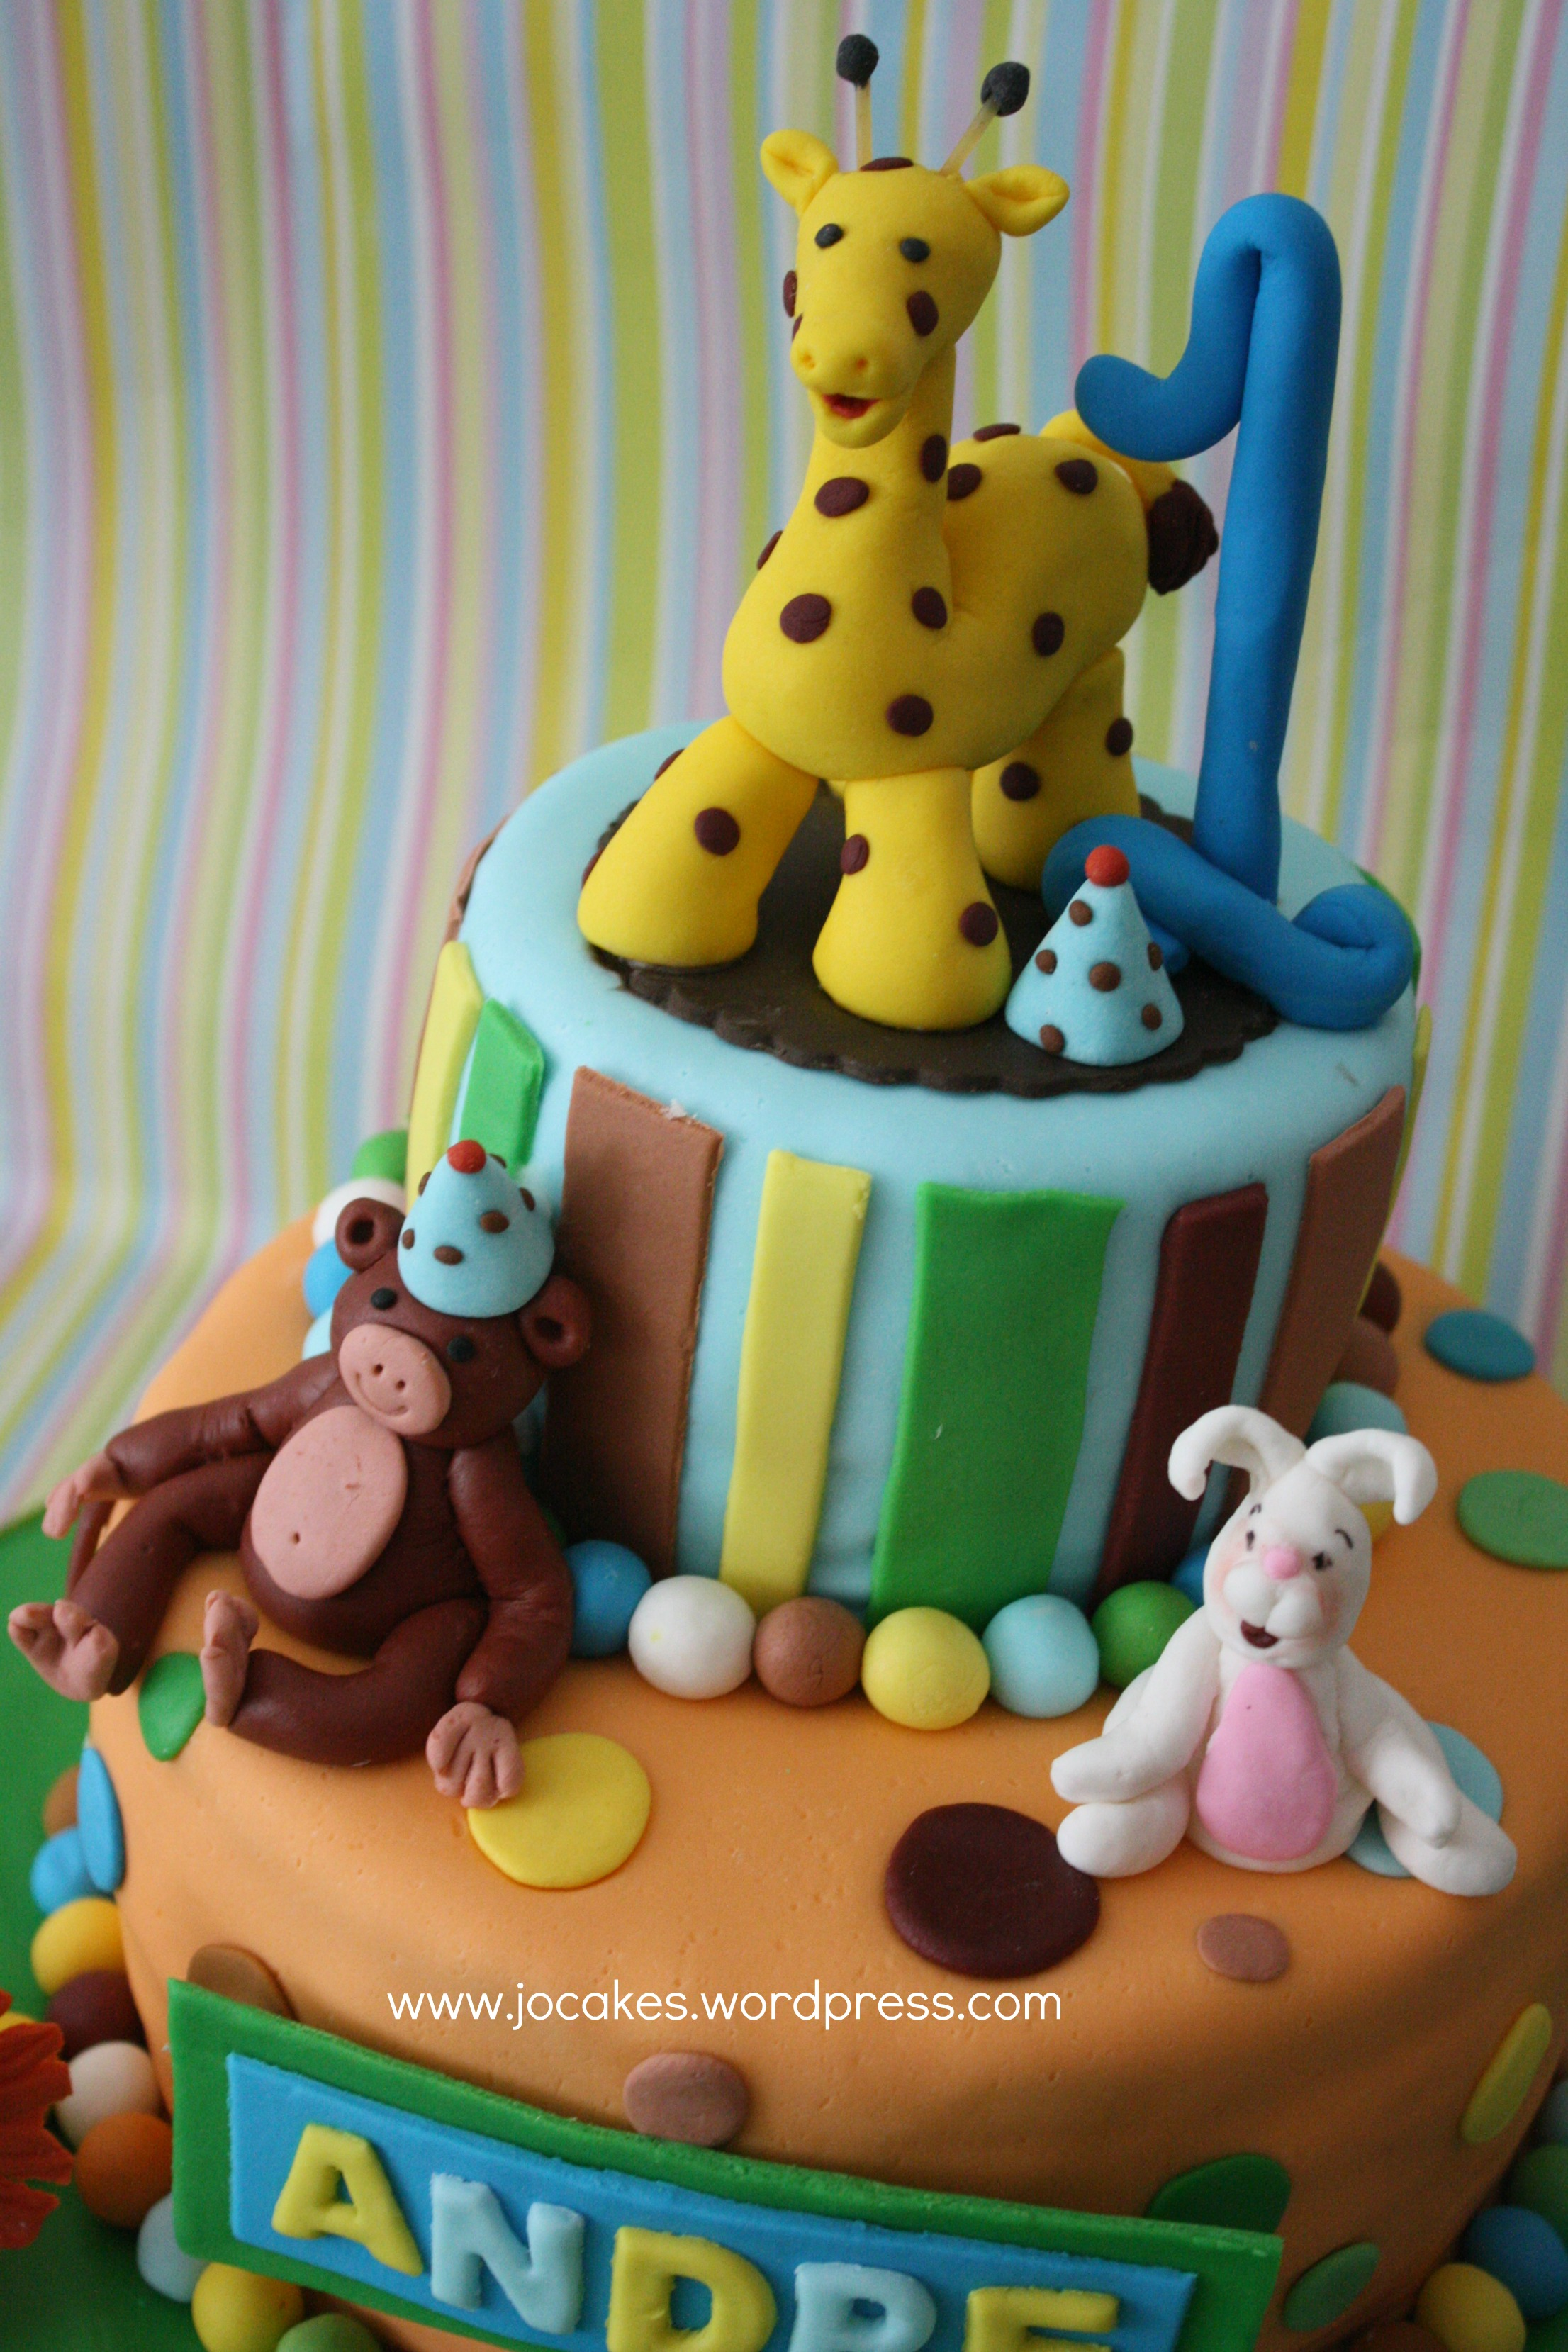 Jungle Birthday Cakes 1 Year Old Boy